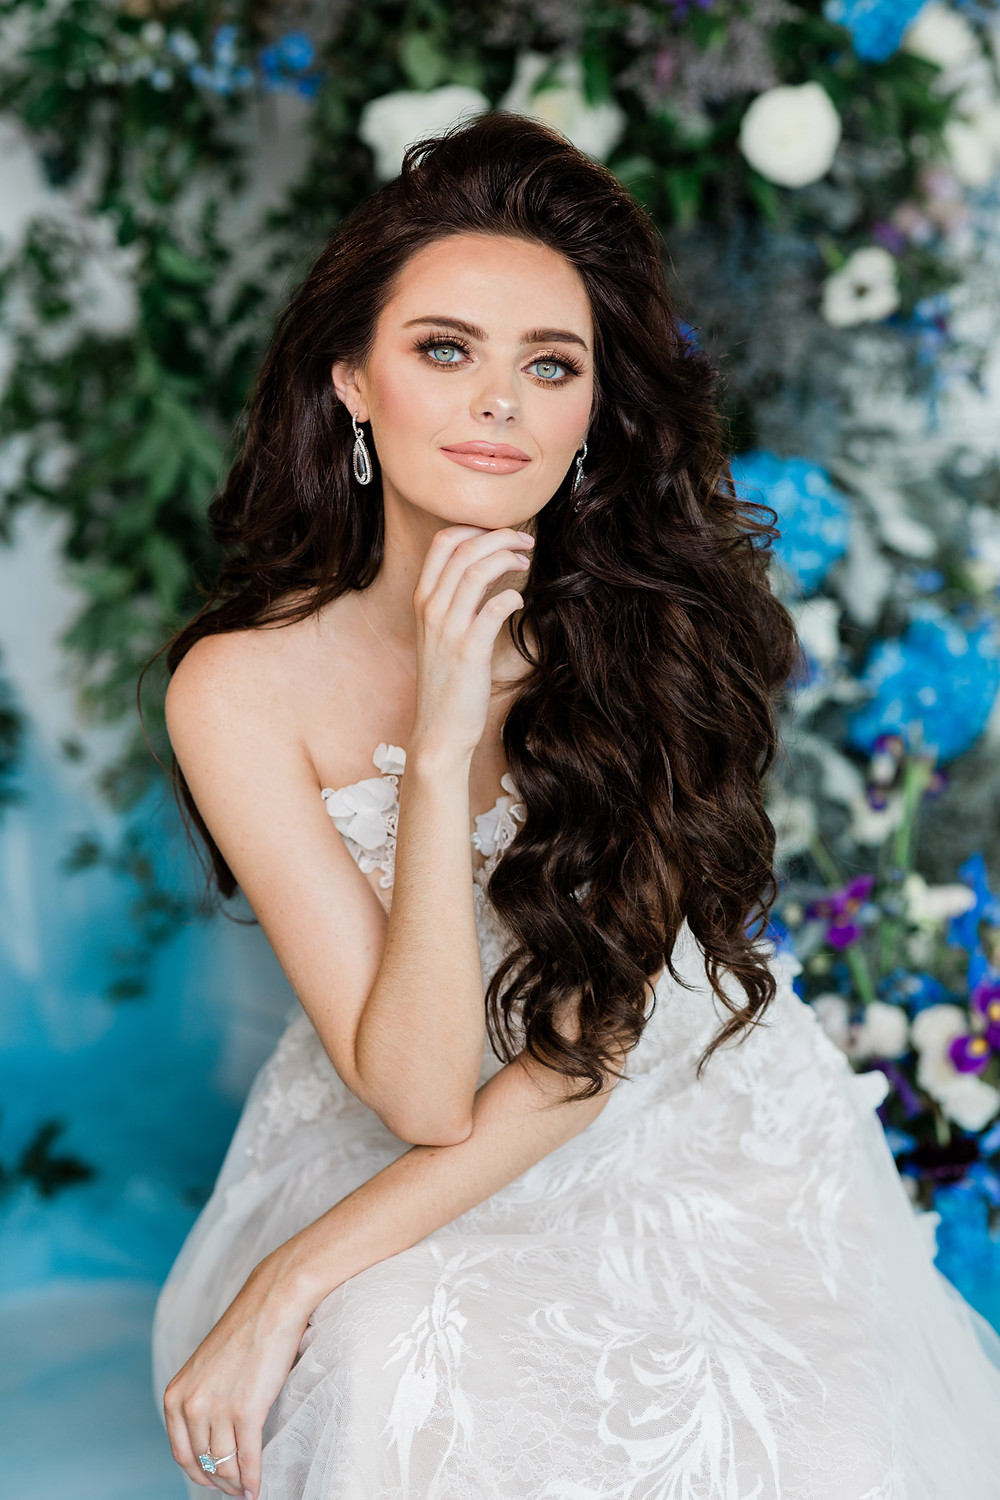 luxury glam bridal hair and makeup wedding photography portrait